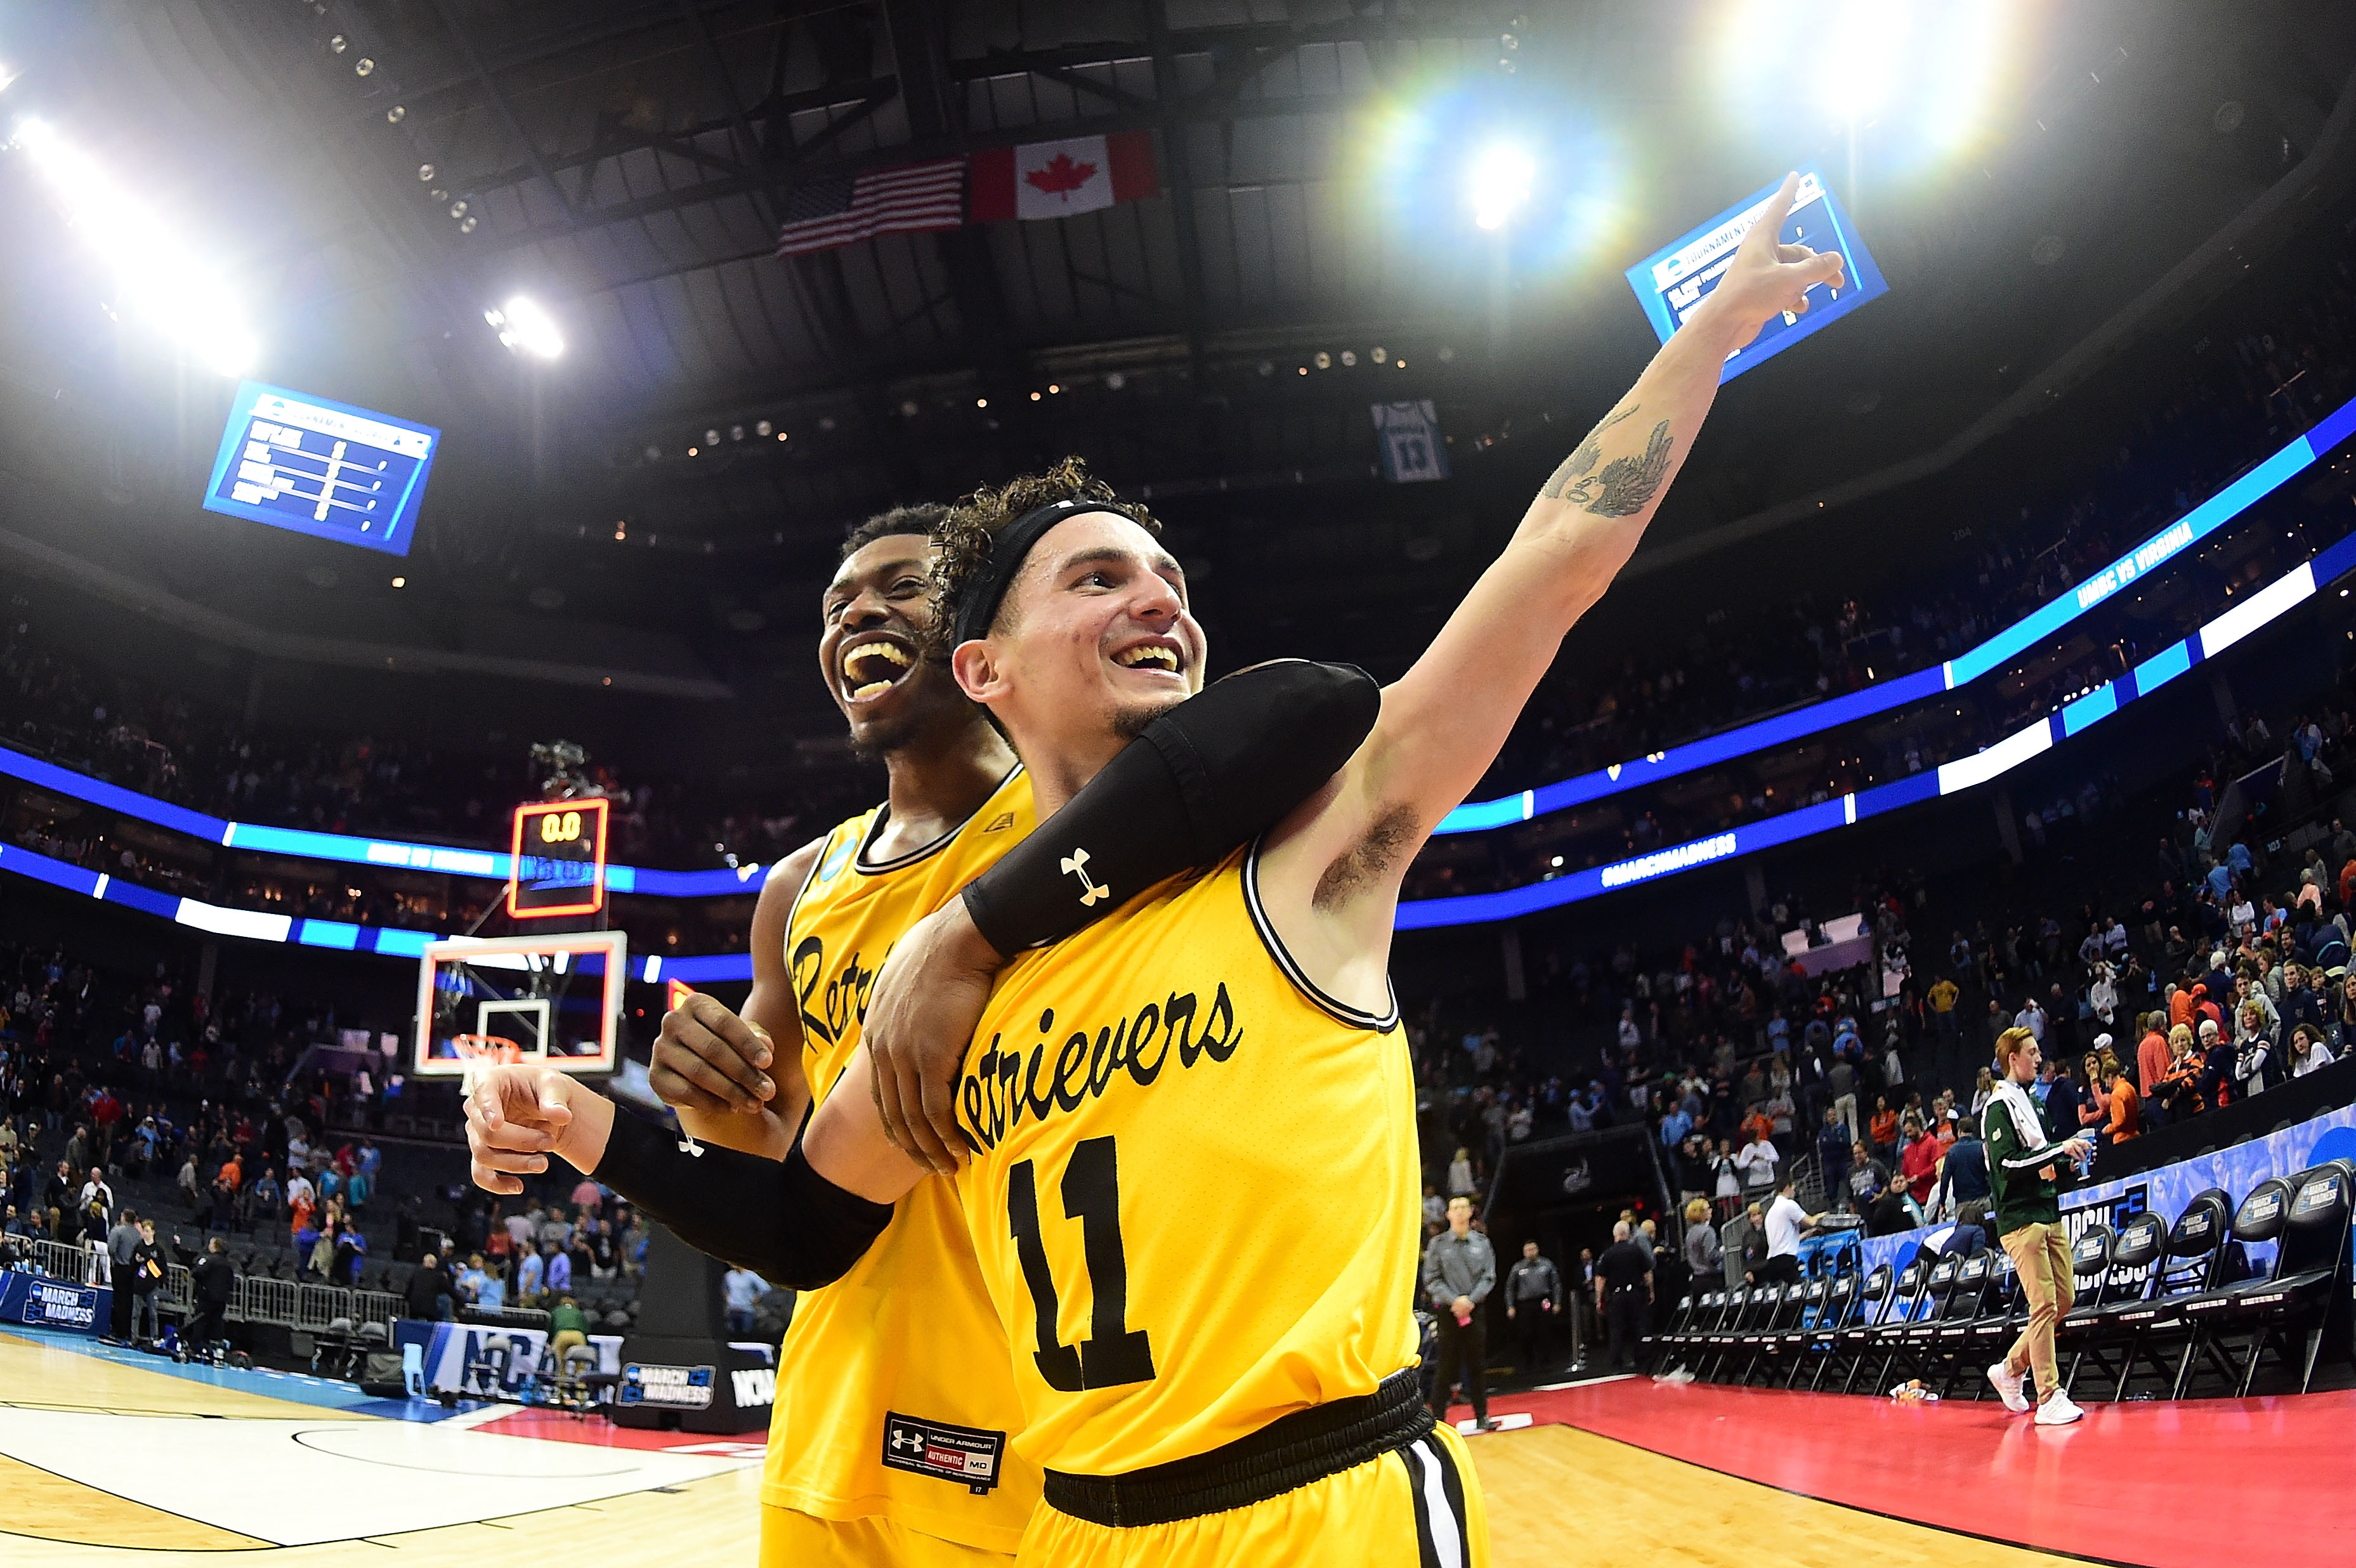 The No. 16 Seed UMBC Topples Virginia in a Historic Upset